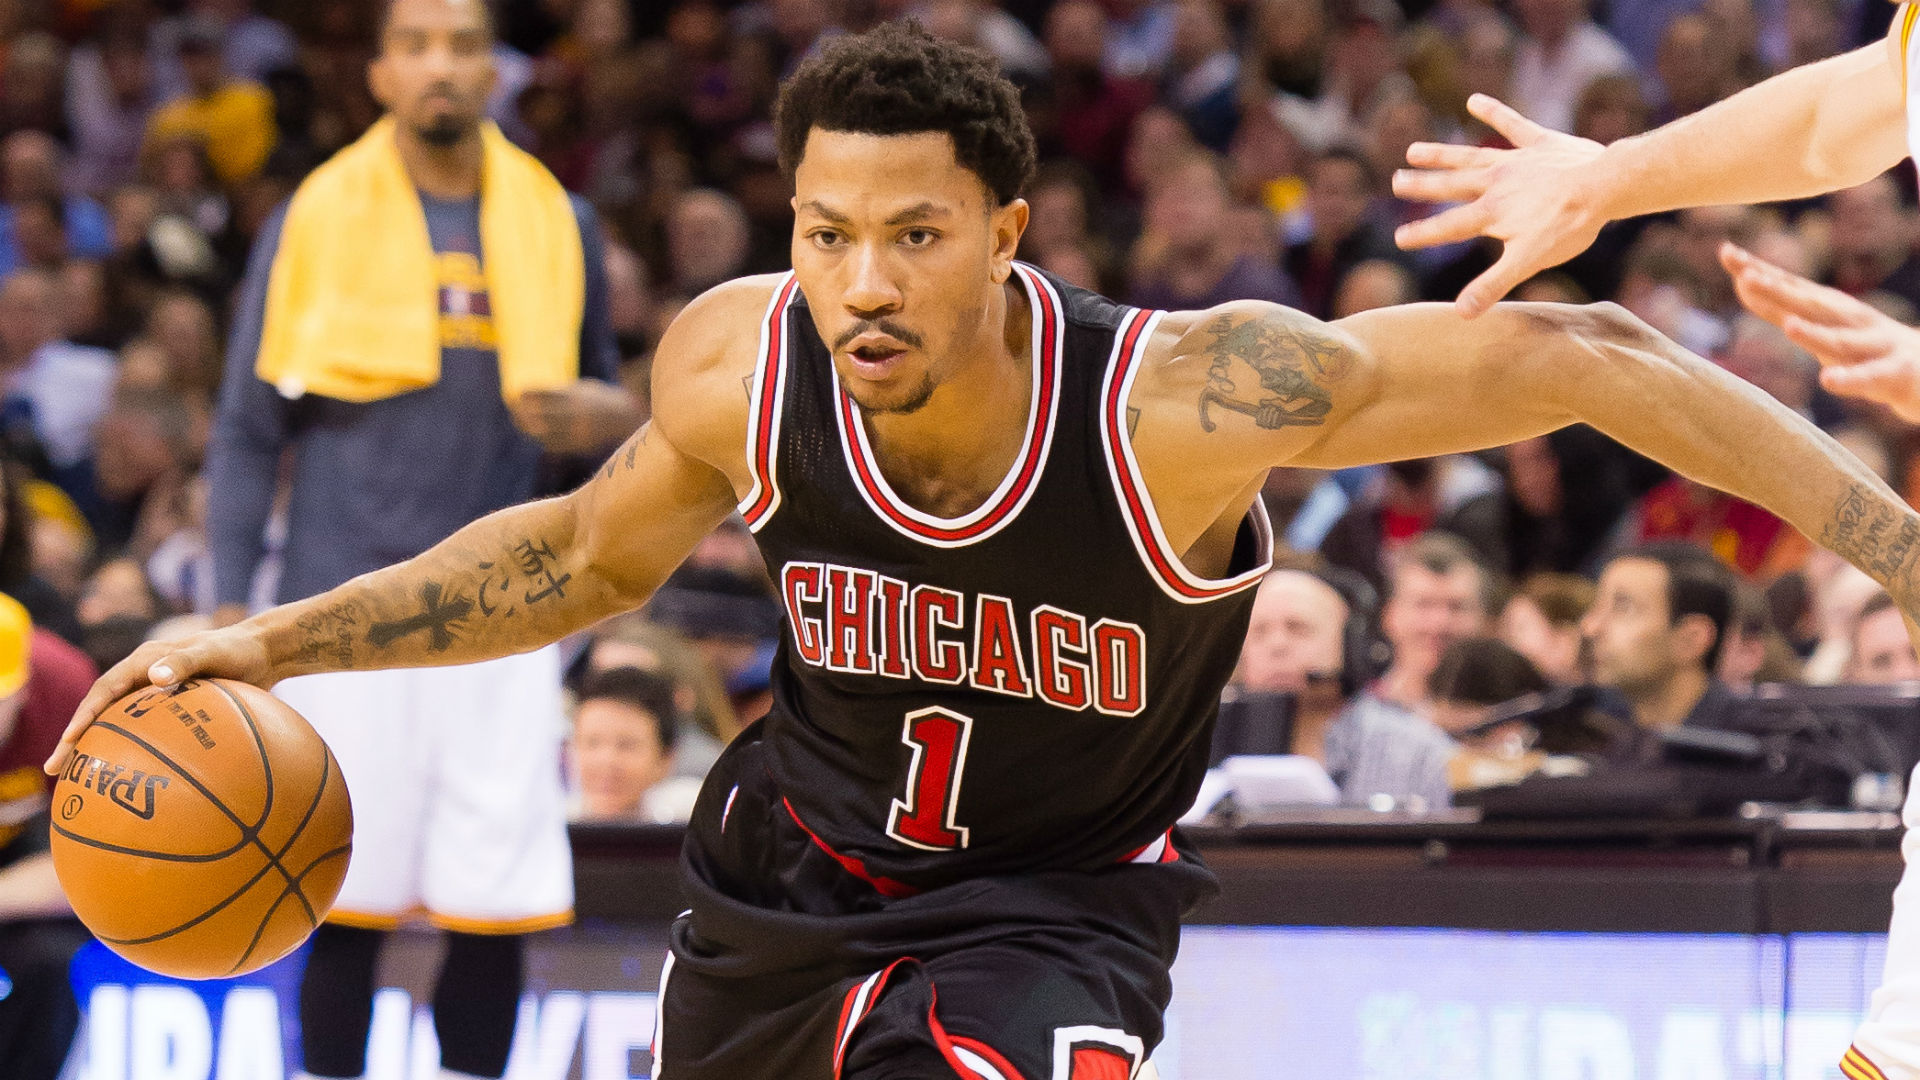 AccuScore NBA pick - Bulls take strong road record into Oakland